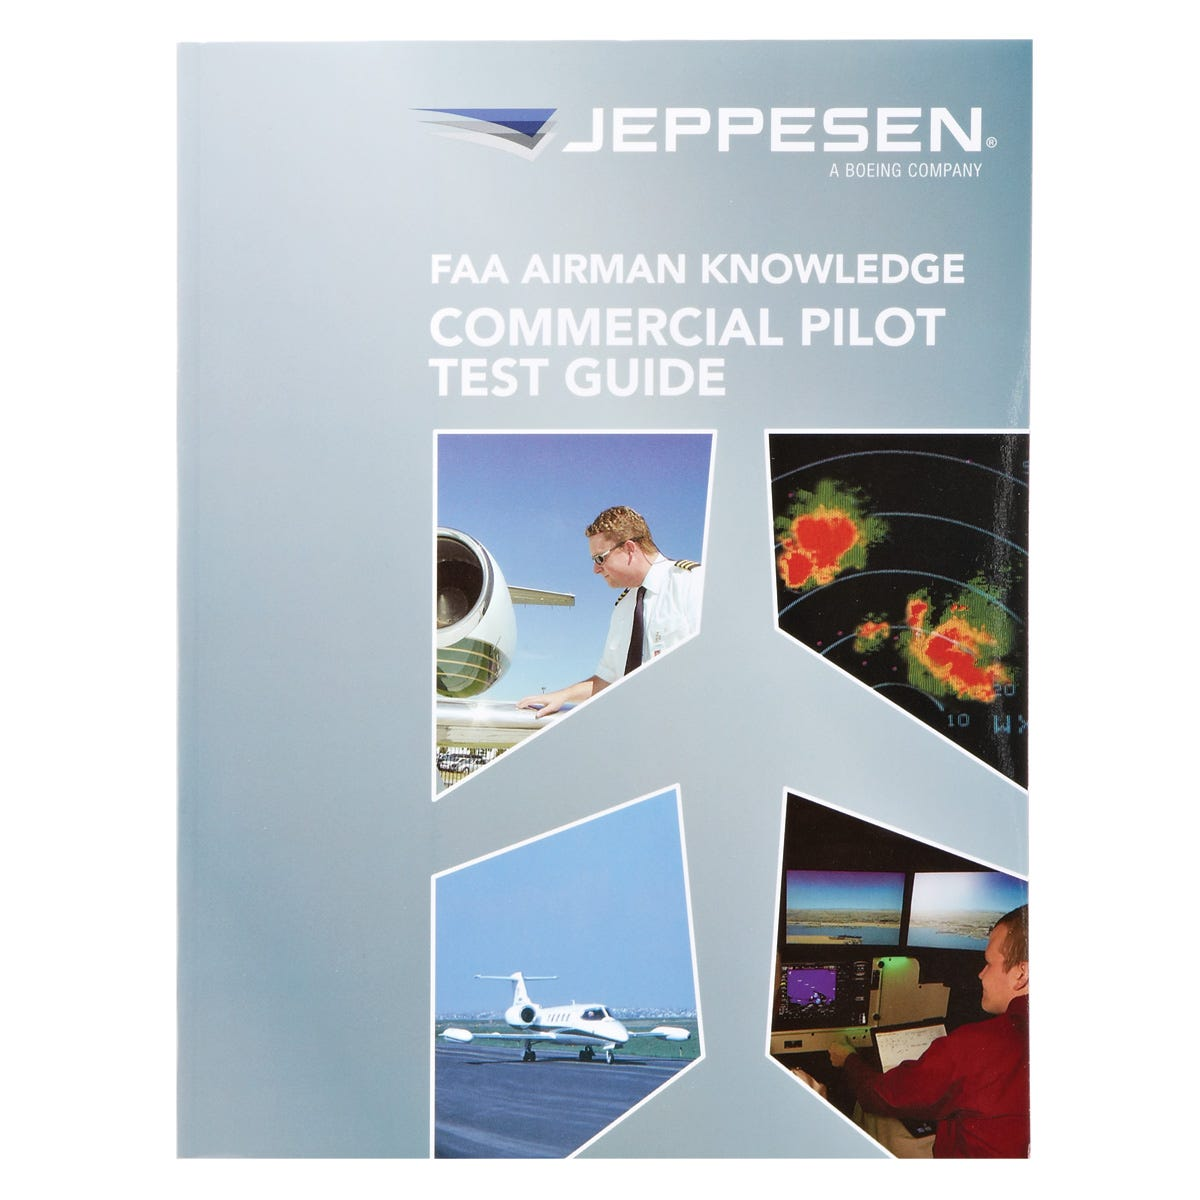 Commercial Pilot Knowledge Test Guide (Jeppesen) - from Sporty's Pilot Shop